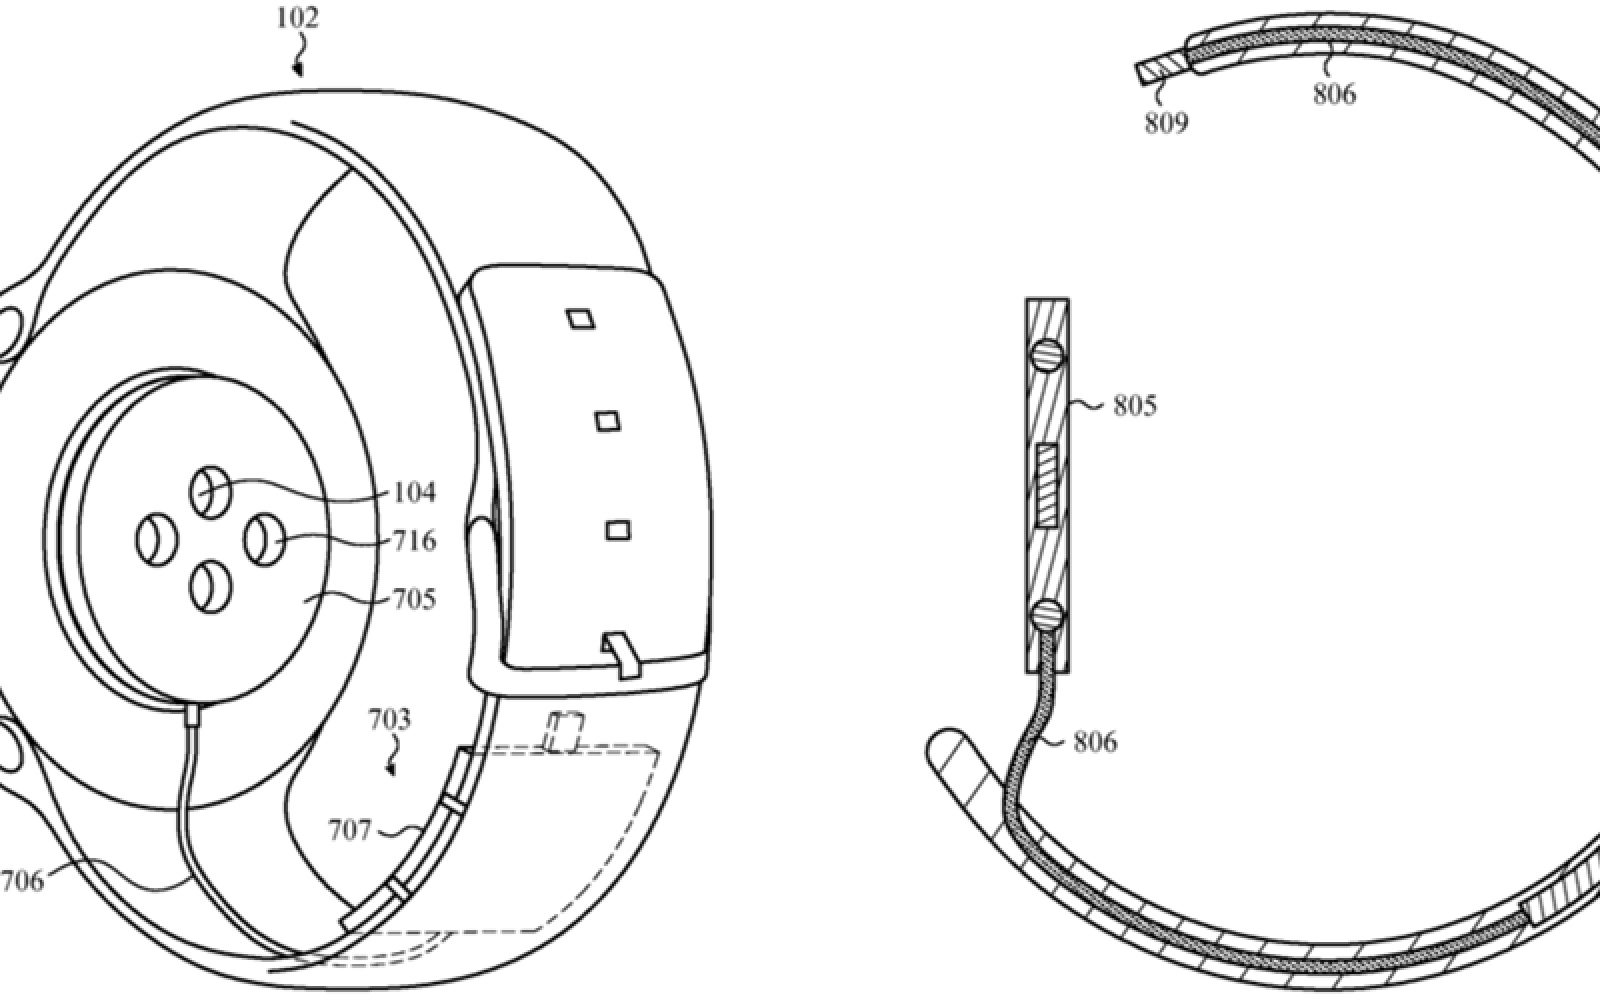 Another Apple Watch Patent Features Battery Band Oddly Shows Round Diagram Design